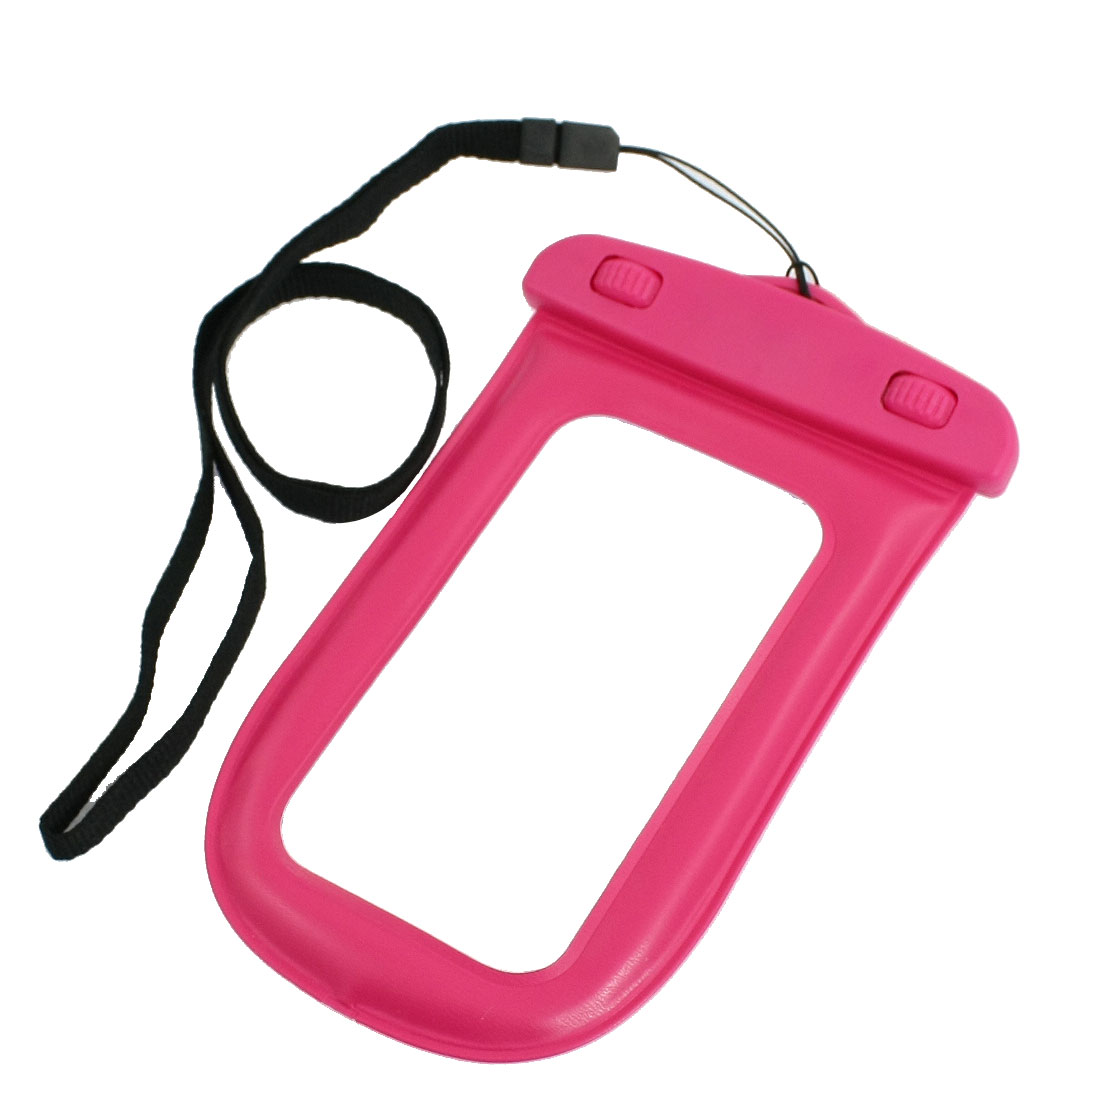 Plastic Water Resist Case Pouch Fuchsia w Strap for iPhone 3G 3GS 4 4G